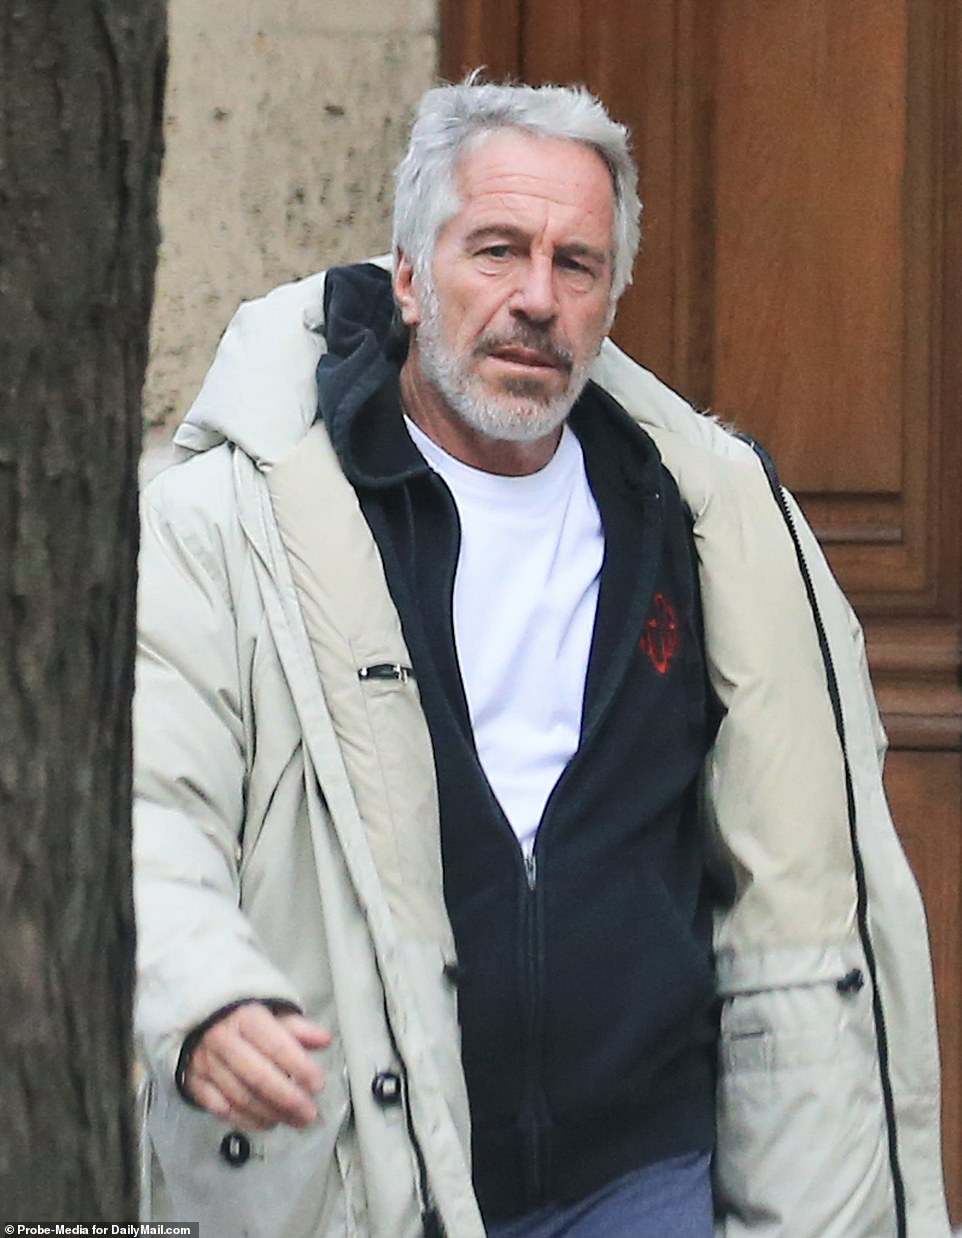 Epstein's suicide comes just two weeks after he was hospitalized following what may have been an initial attempt to take his own life. He is pictured in New York in January